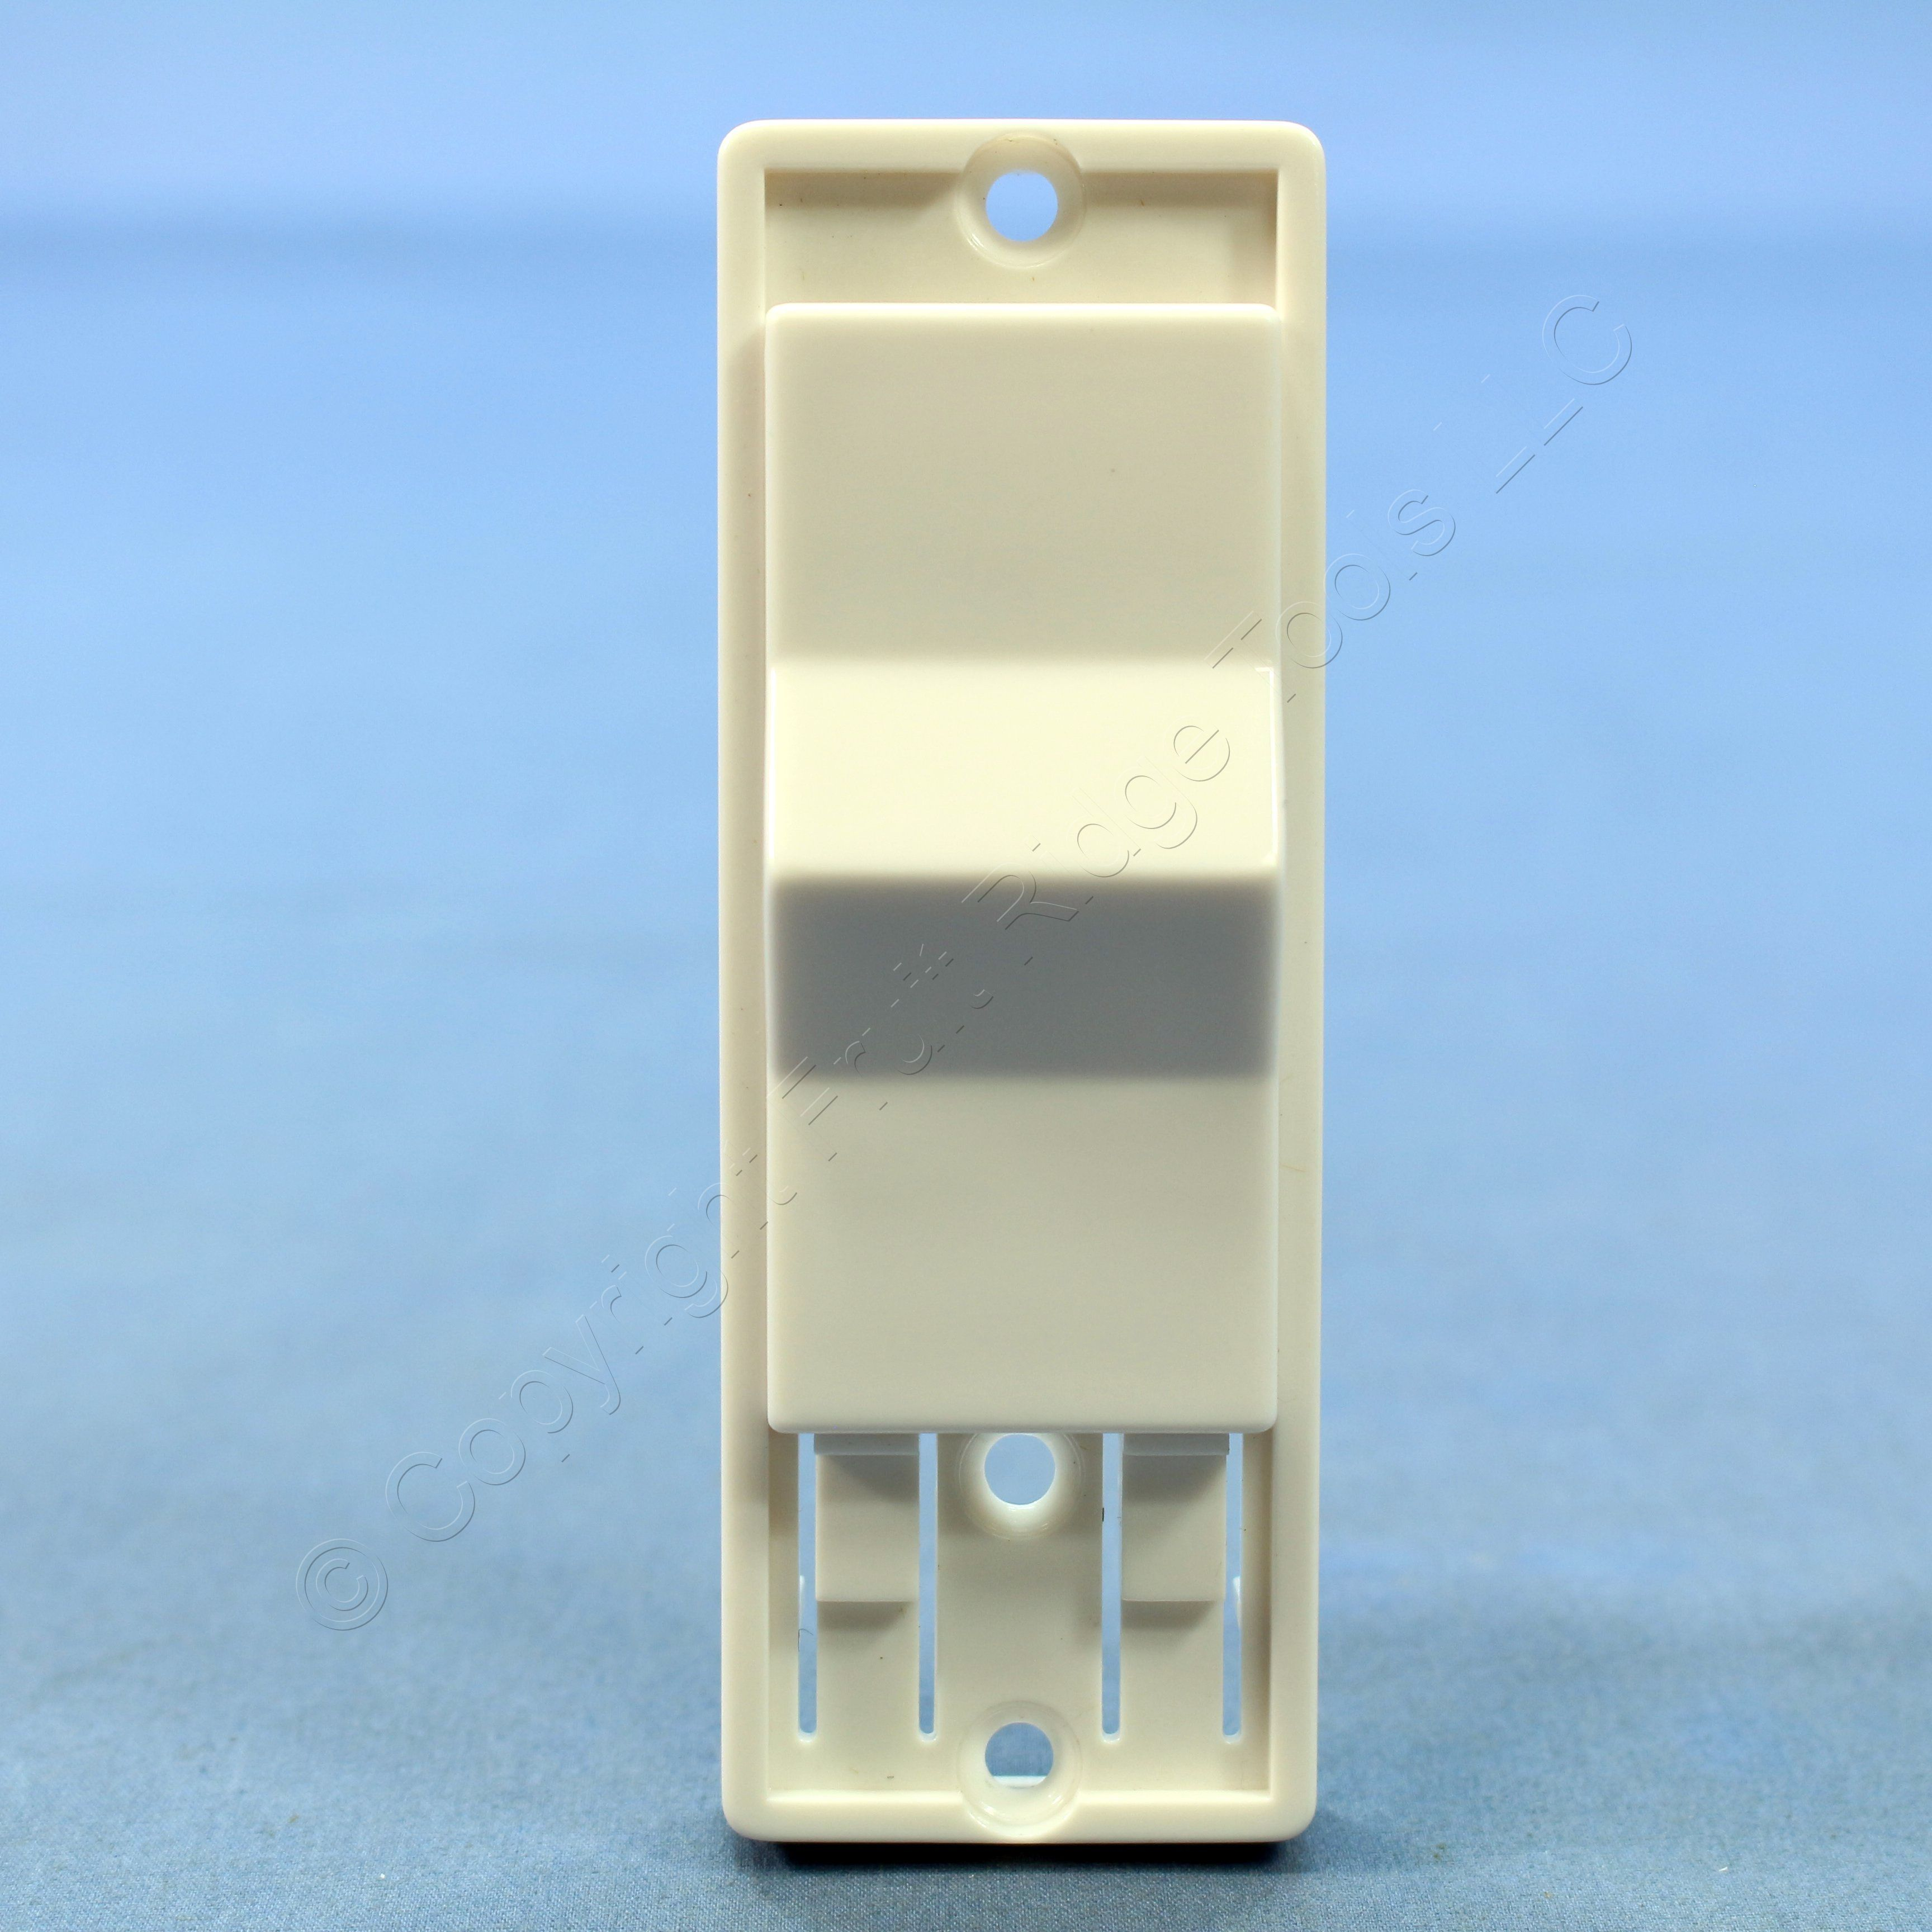 Leviton white toggle and decora light switch childproof for Decora light switches